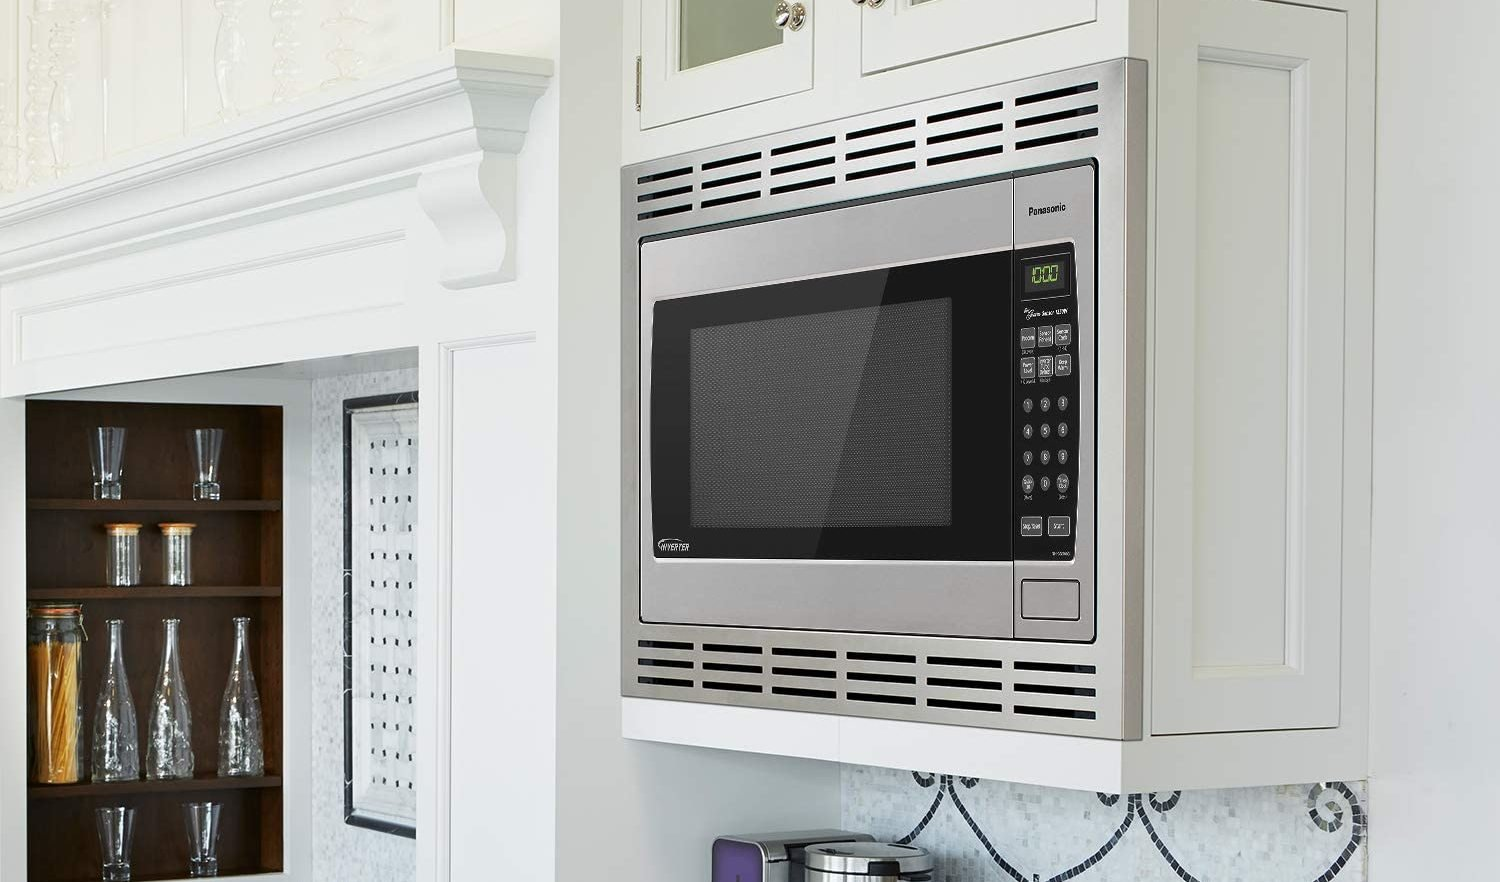 Panasonic NN-SN966S Review - A great microwave countertop oven? 1